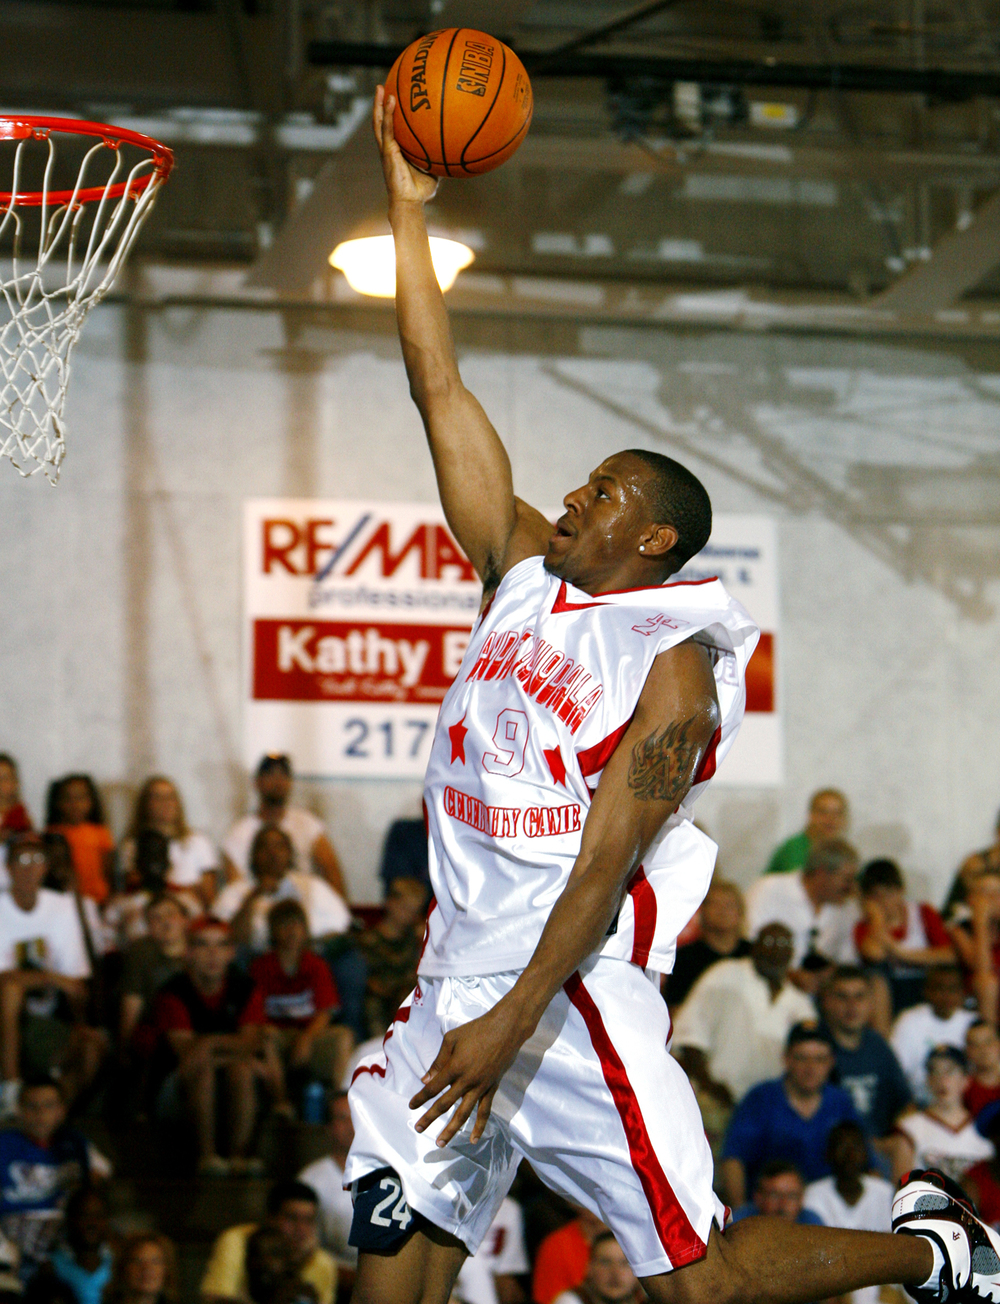 Andre Iguodala drives to the hoop during the 2nd annual Andre Iguodala Celebrity Basketball Game at Lincoln Land Community College June 24, 2006. Ted Schurter/The State Journal-Register